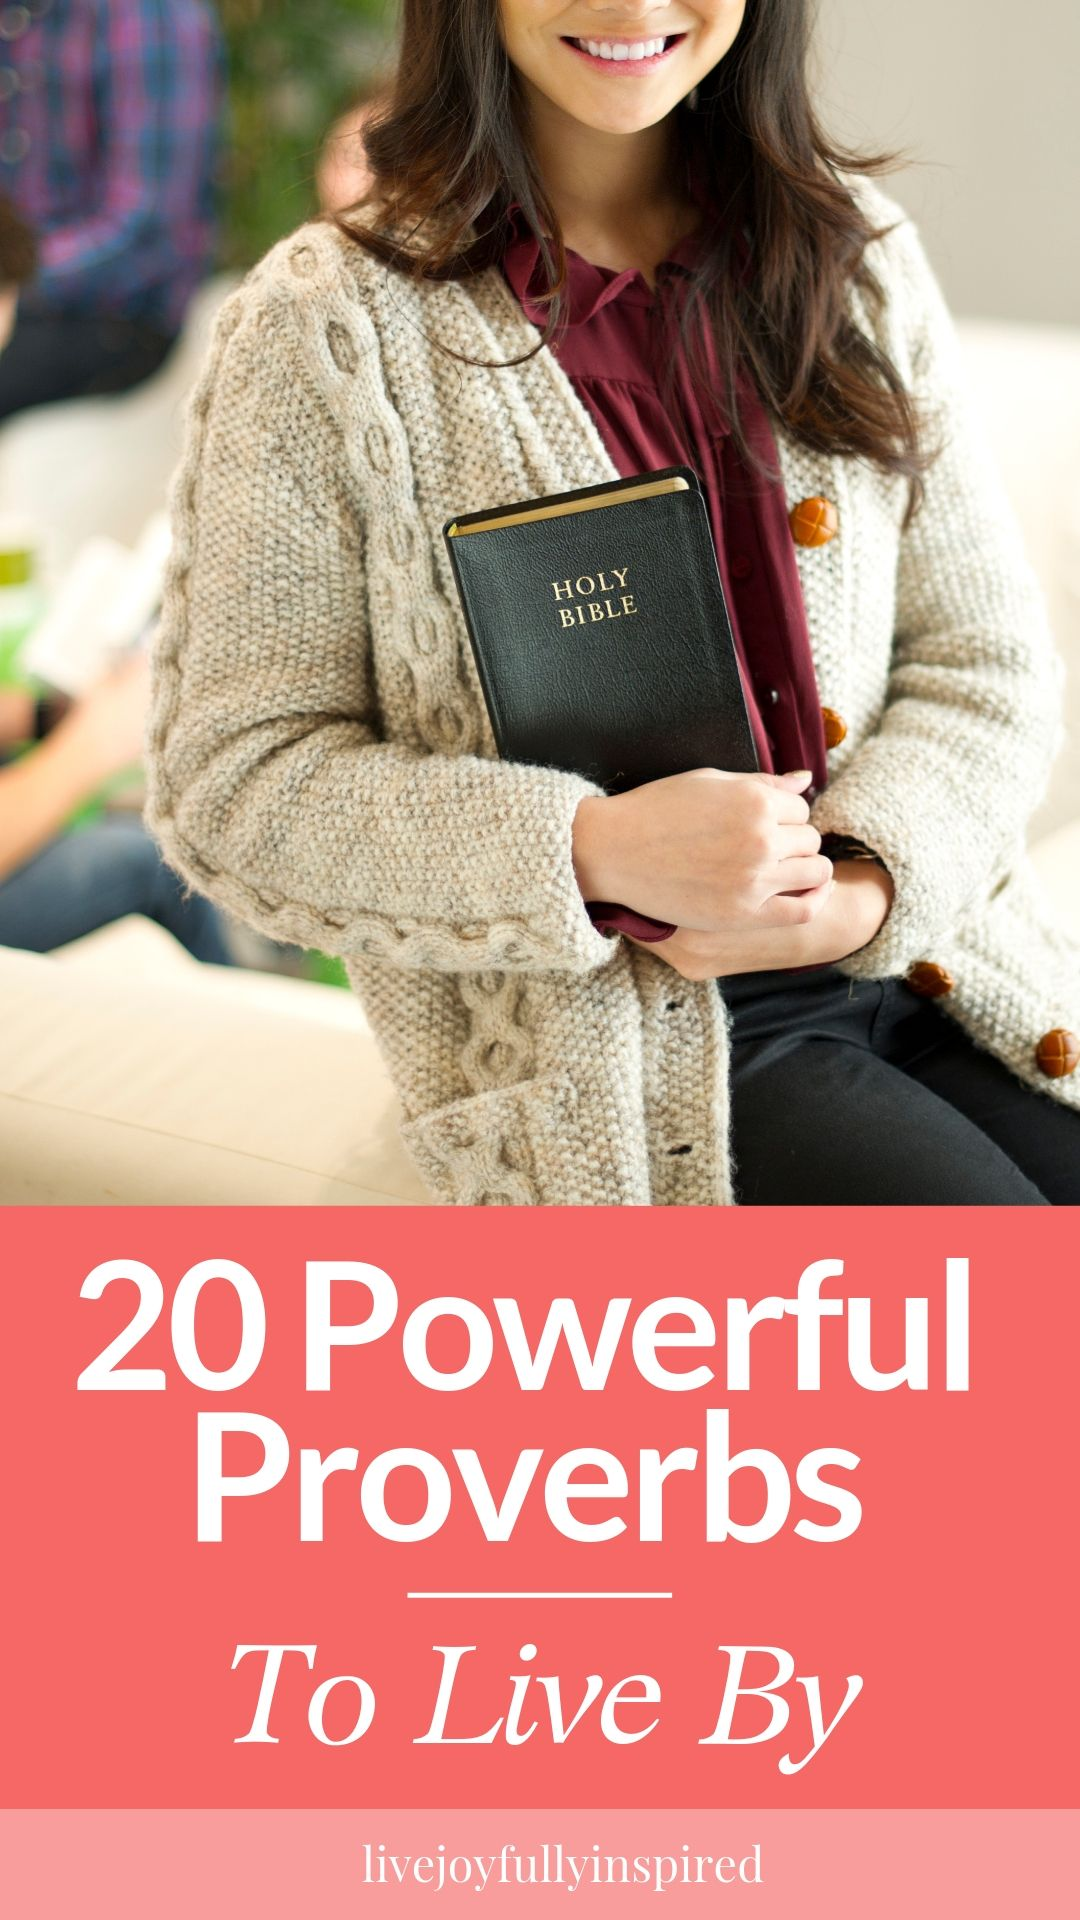 The book of Proverbs contains an enormous amount of wisdom. There are scriptures for every area of life from youth and discipline to poverty and temptation. God has provided us with scripture to help us in our daily walk. #proverbs #bible #scripture